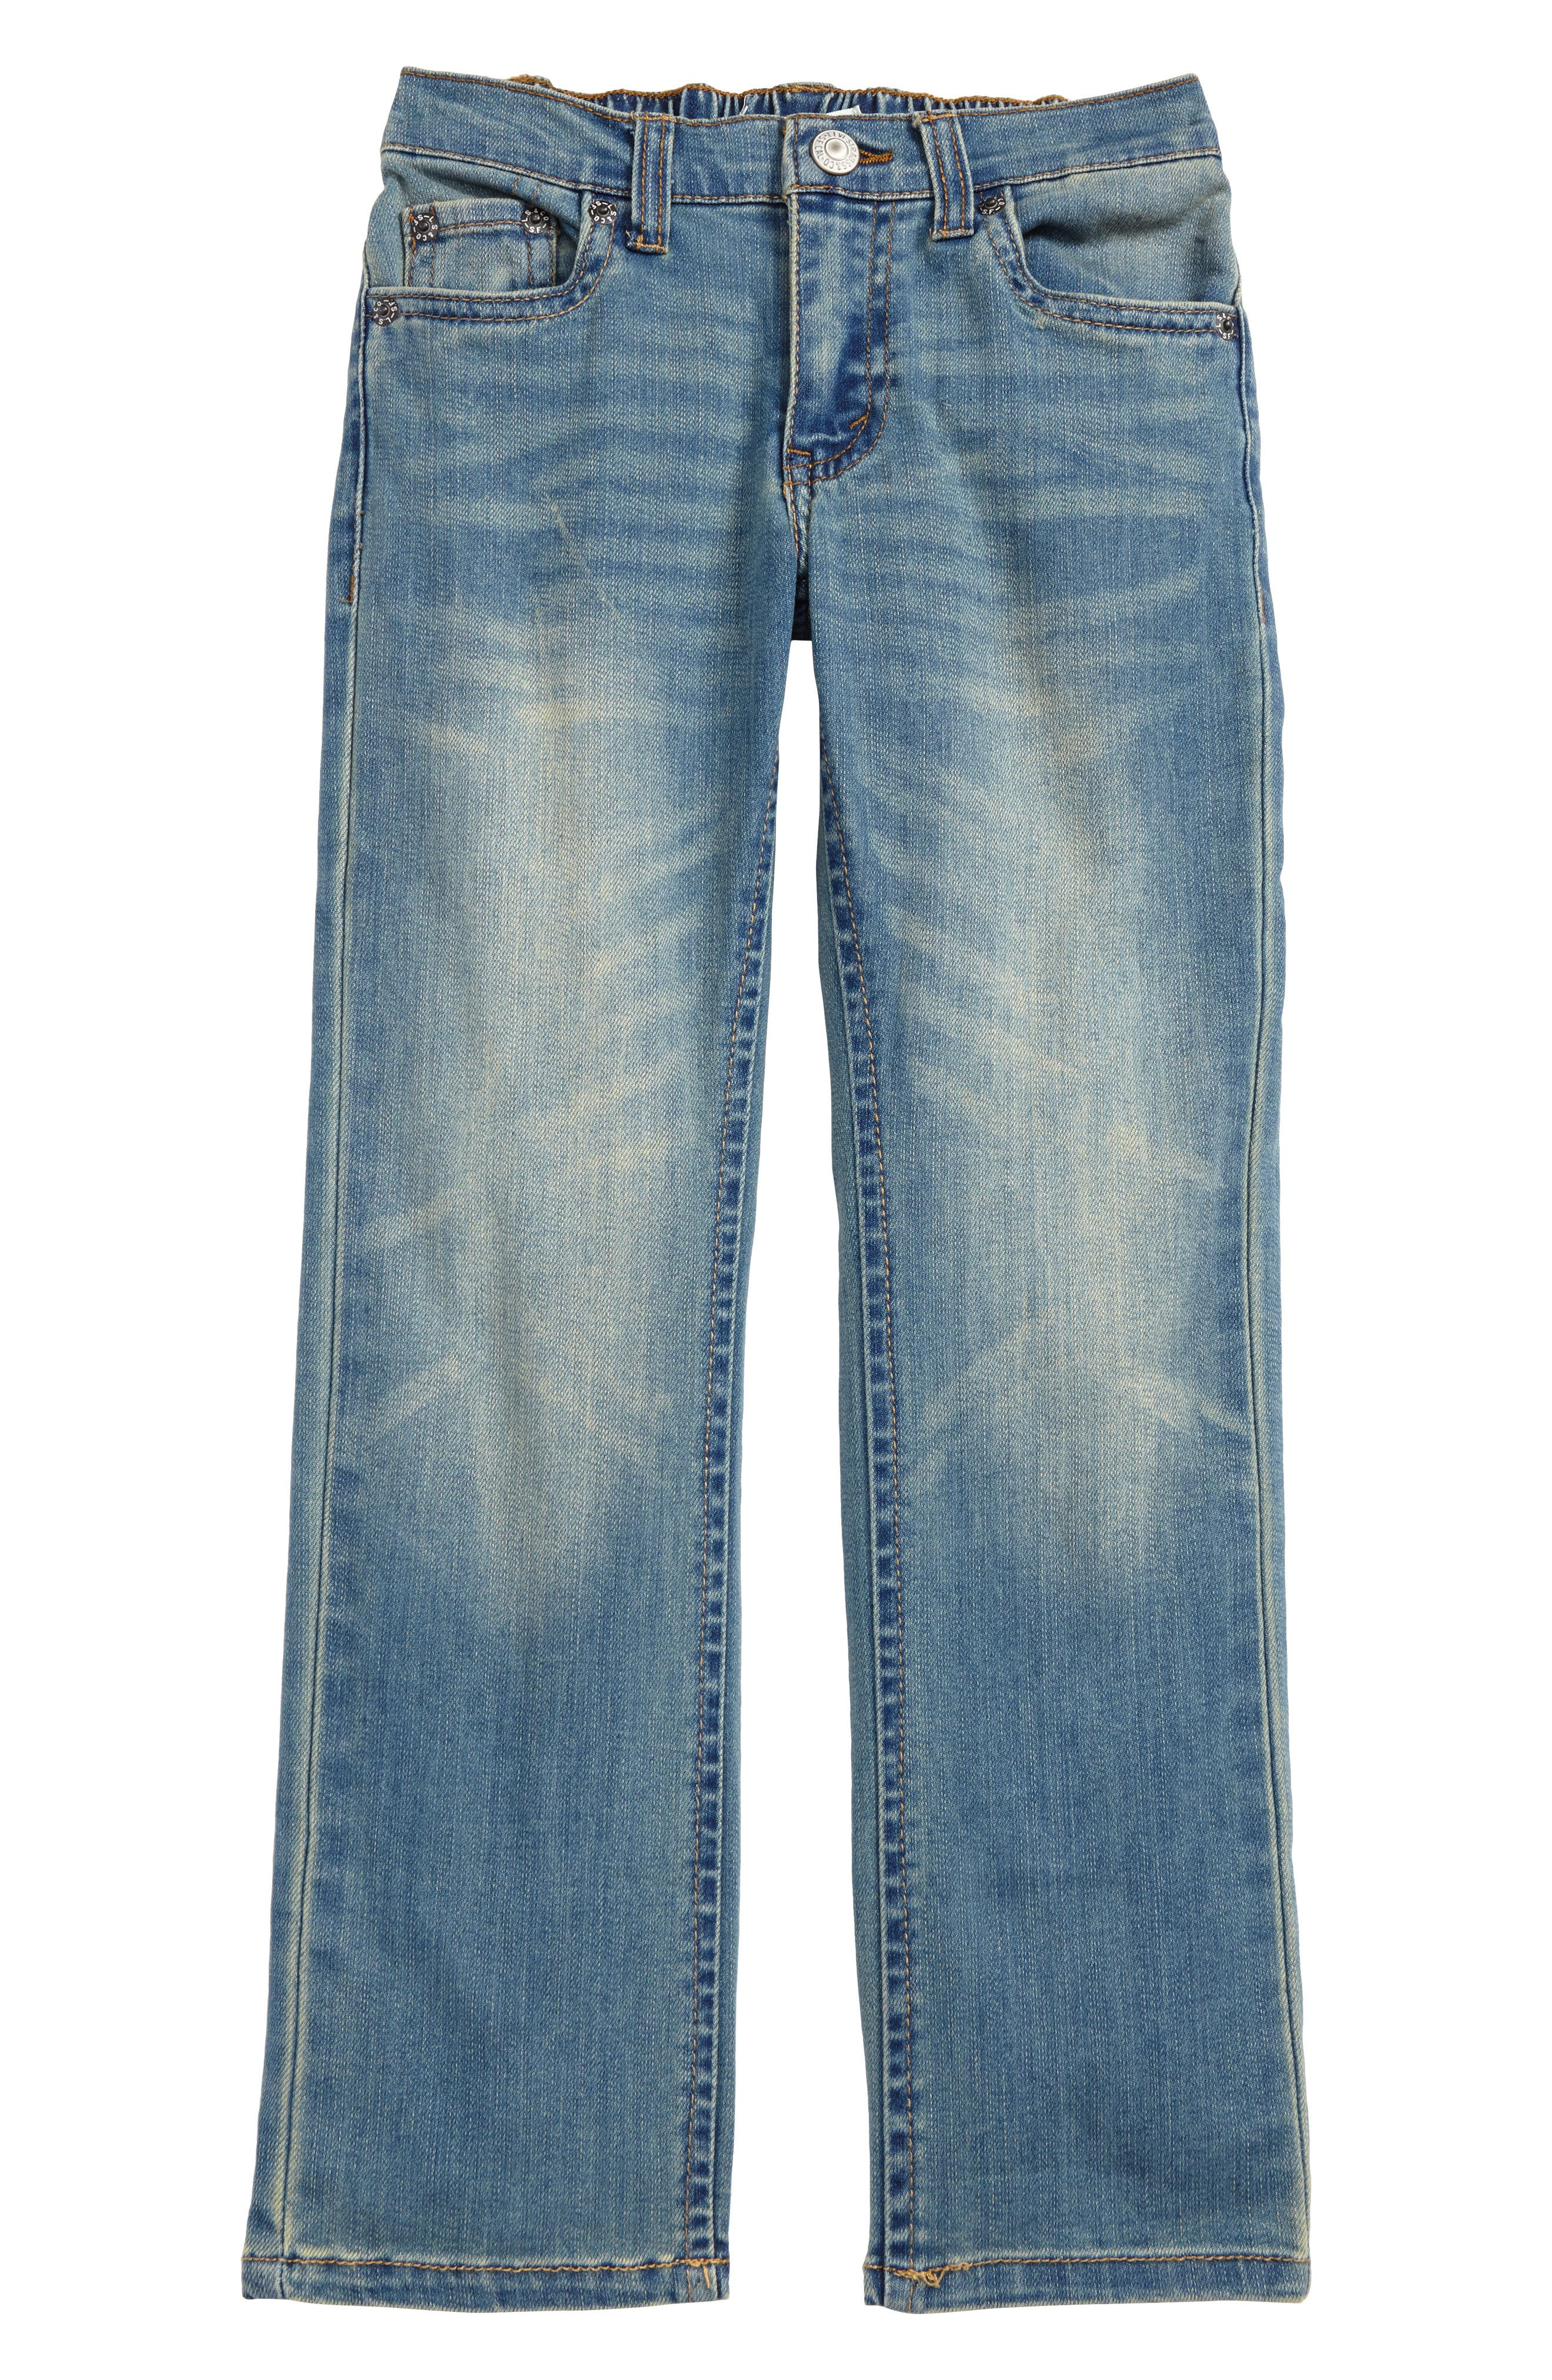 Alternate Image 1 Selected - Levi's® Comfort Slim Fit Jeans (Toddler Boys & Little Boys)